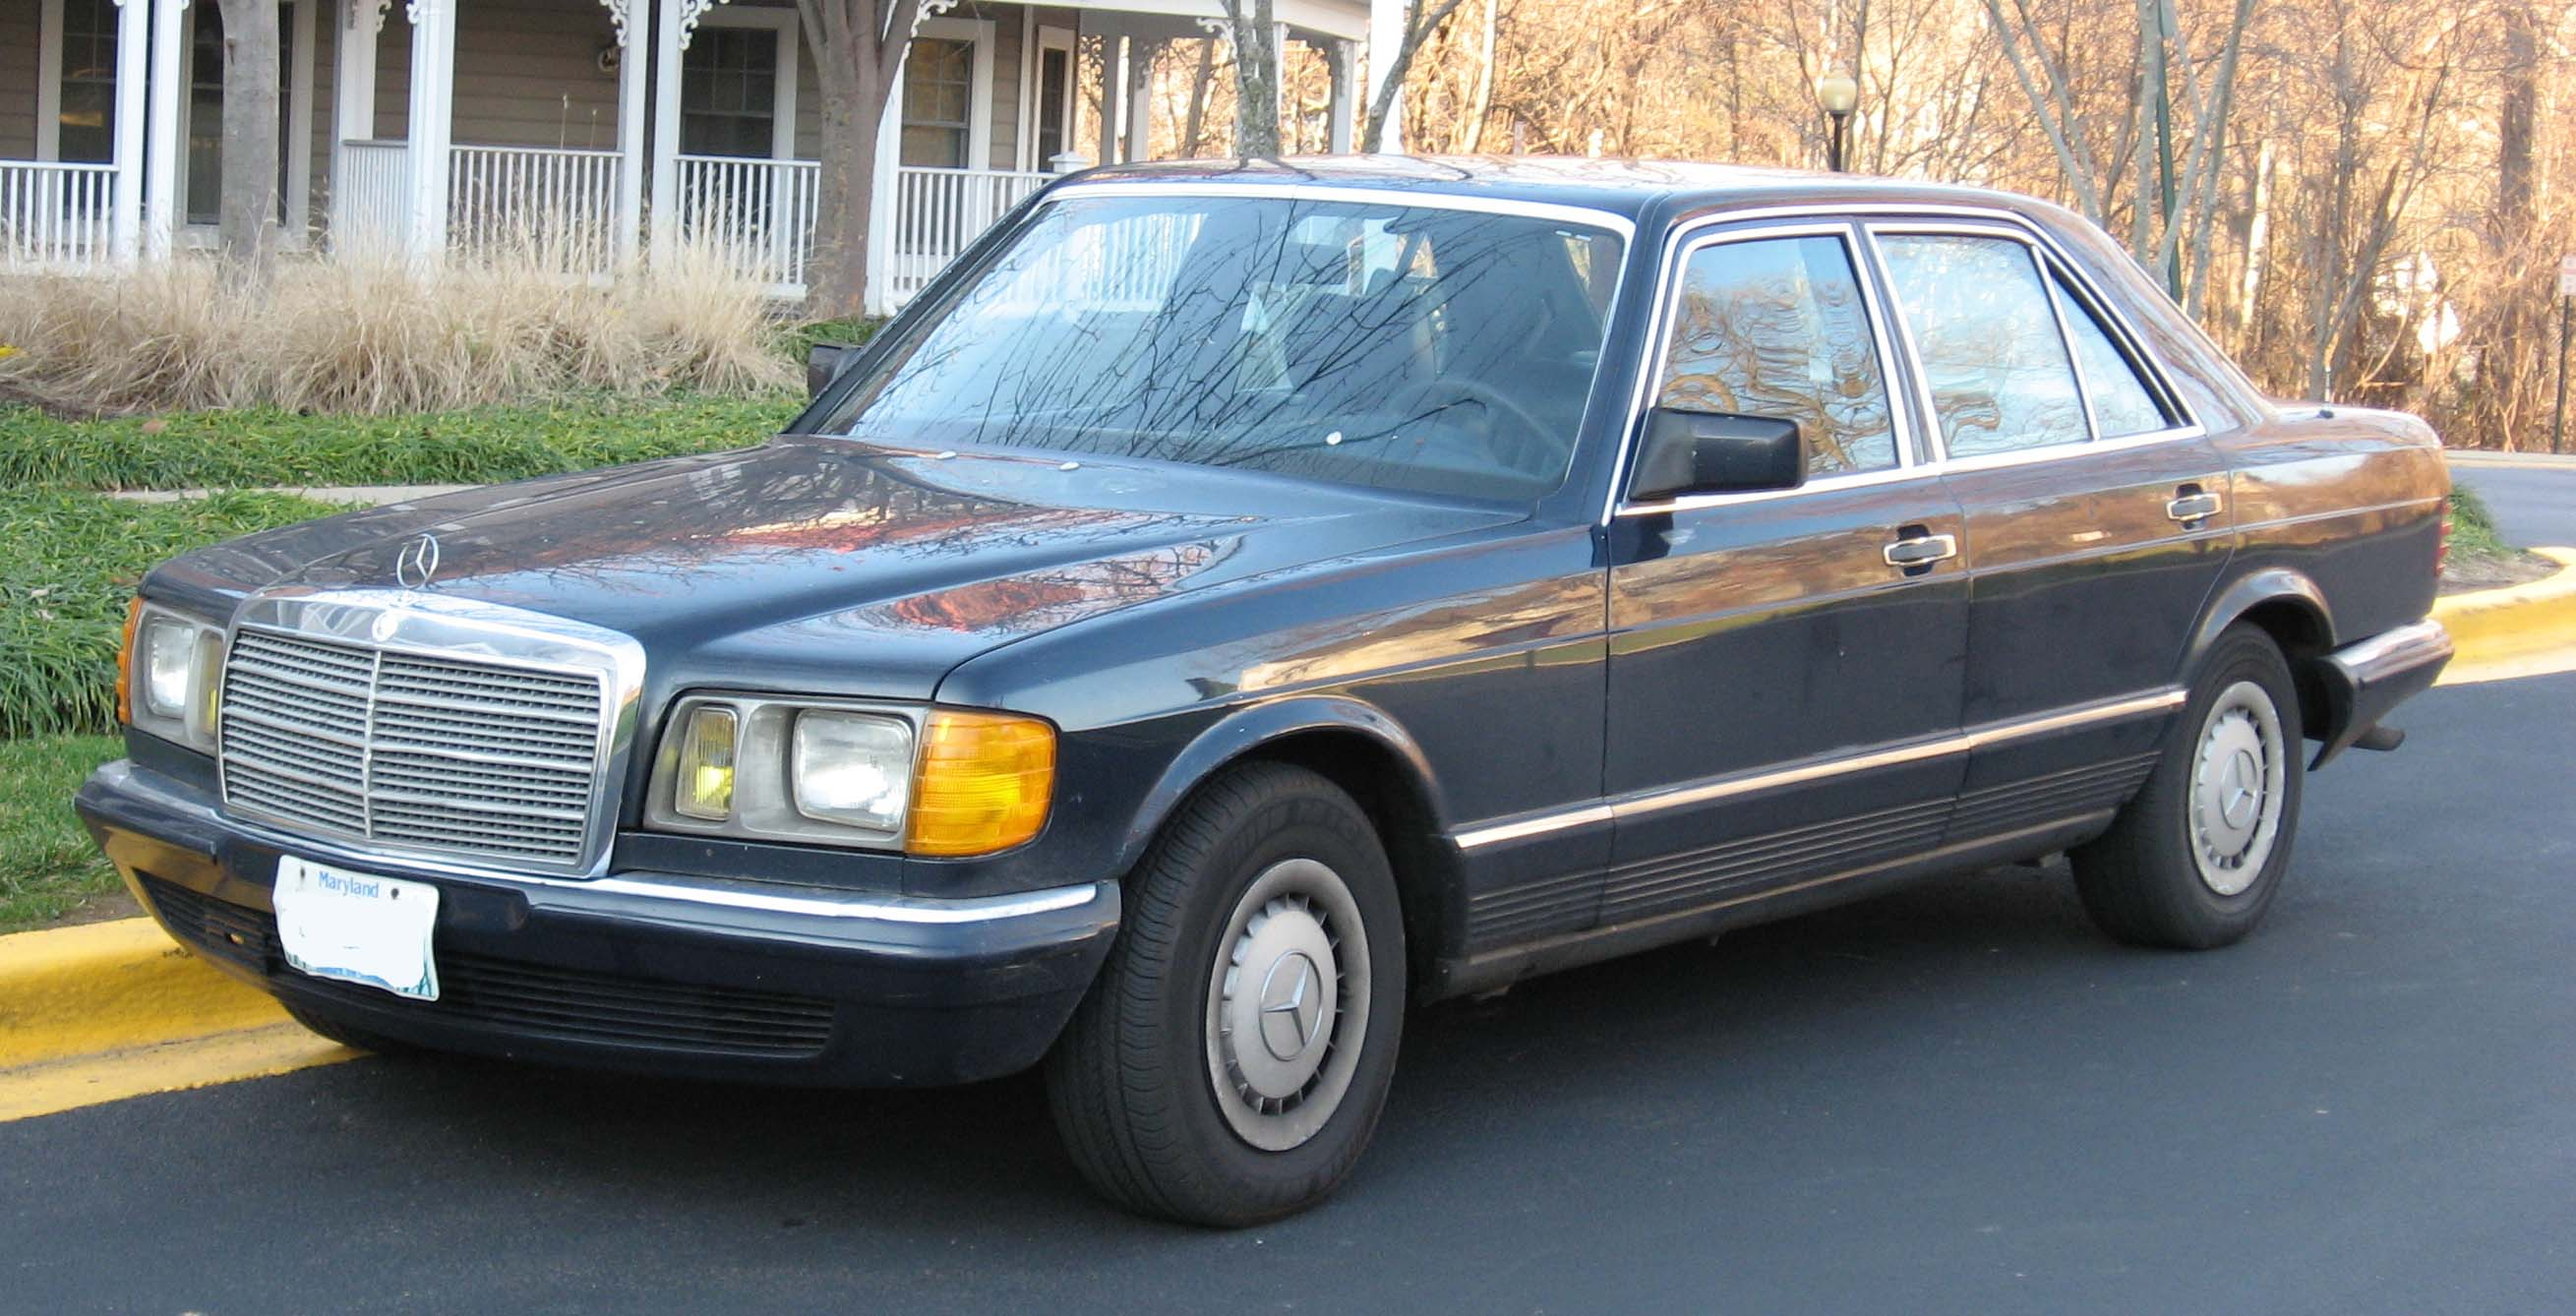 1991 Mercedes Benz 500 Class Information And Photos Zombiedrive 1987 Jeep Cherokee Fuse Box Location 10